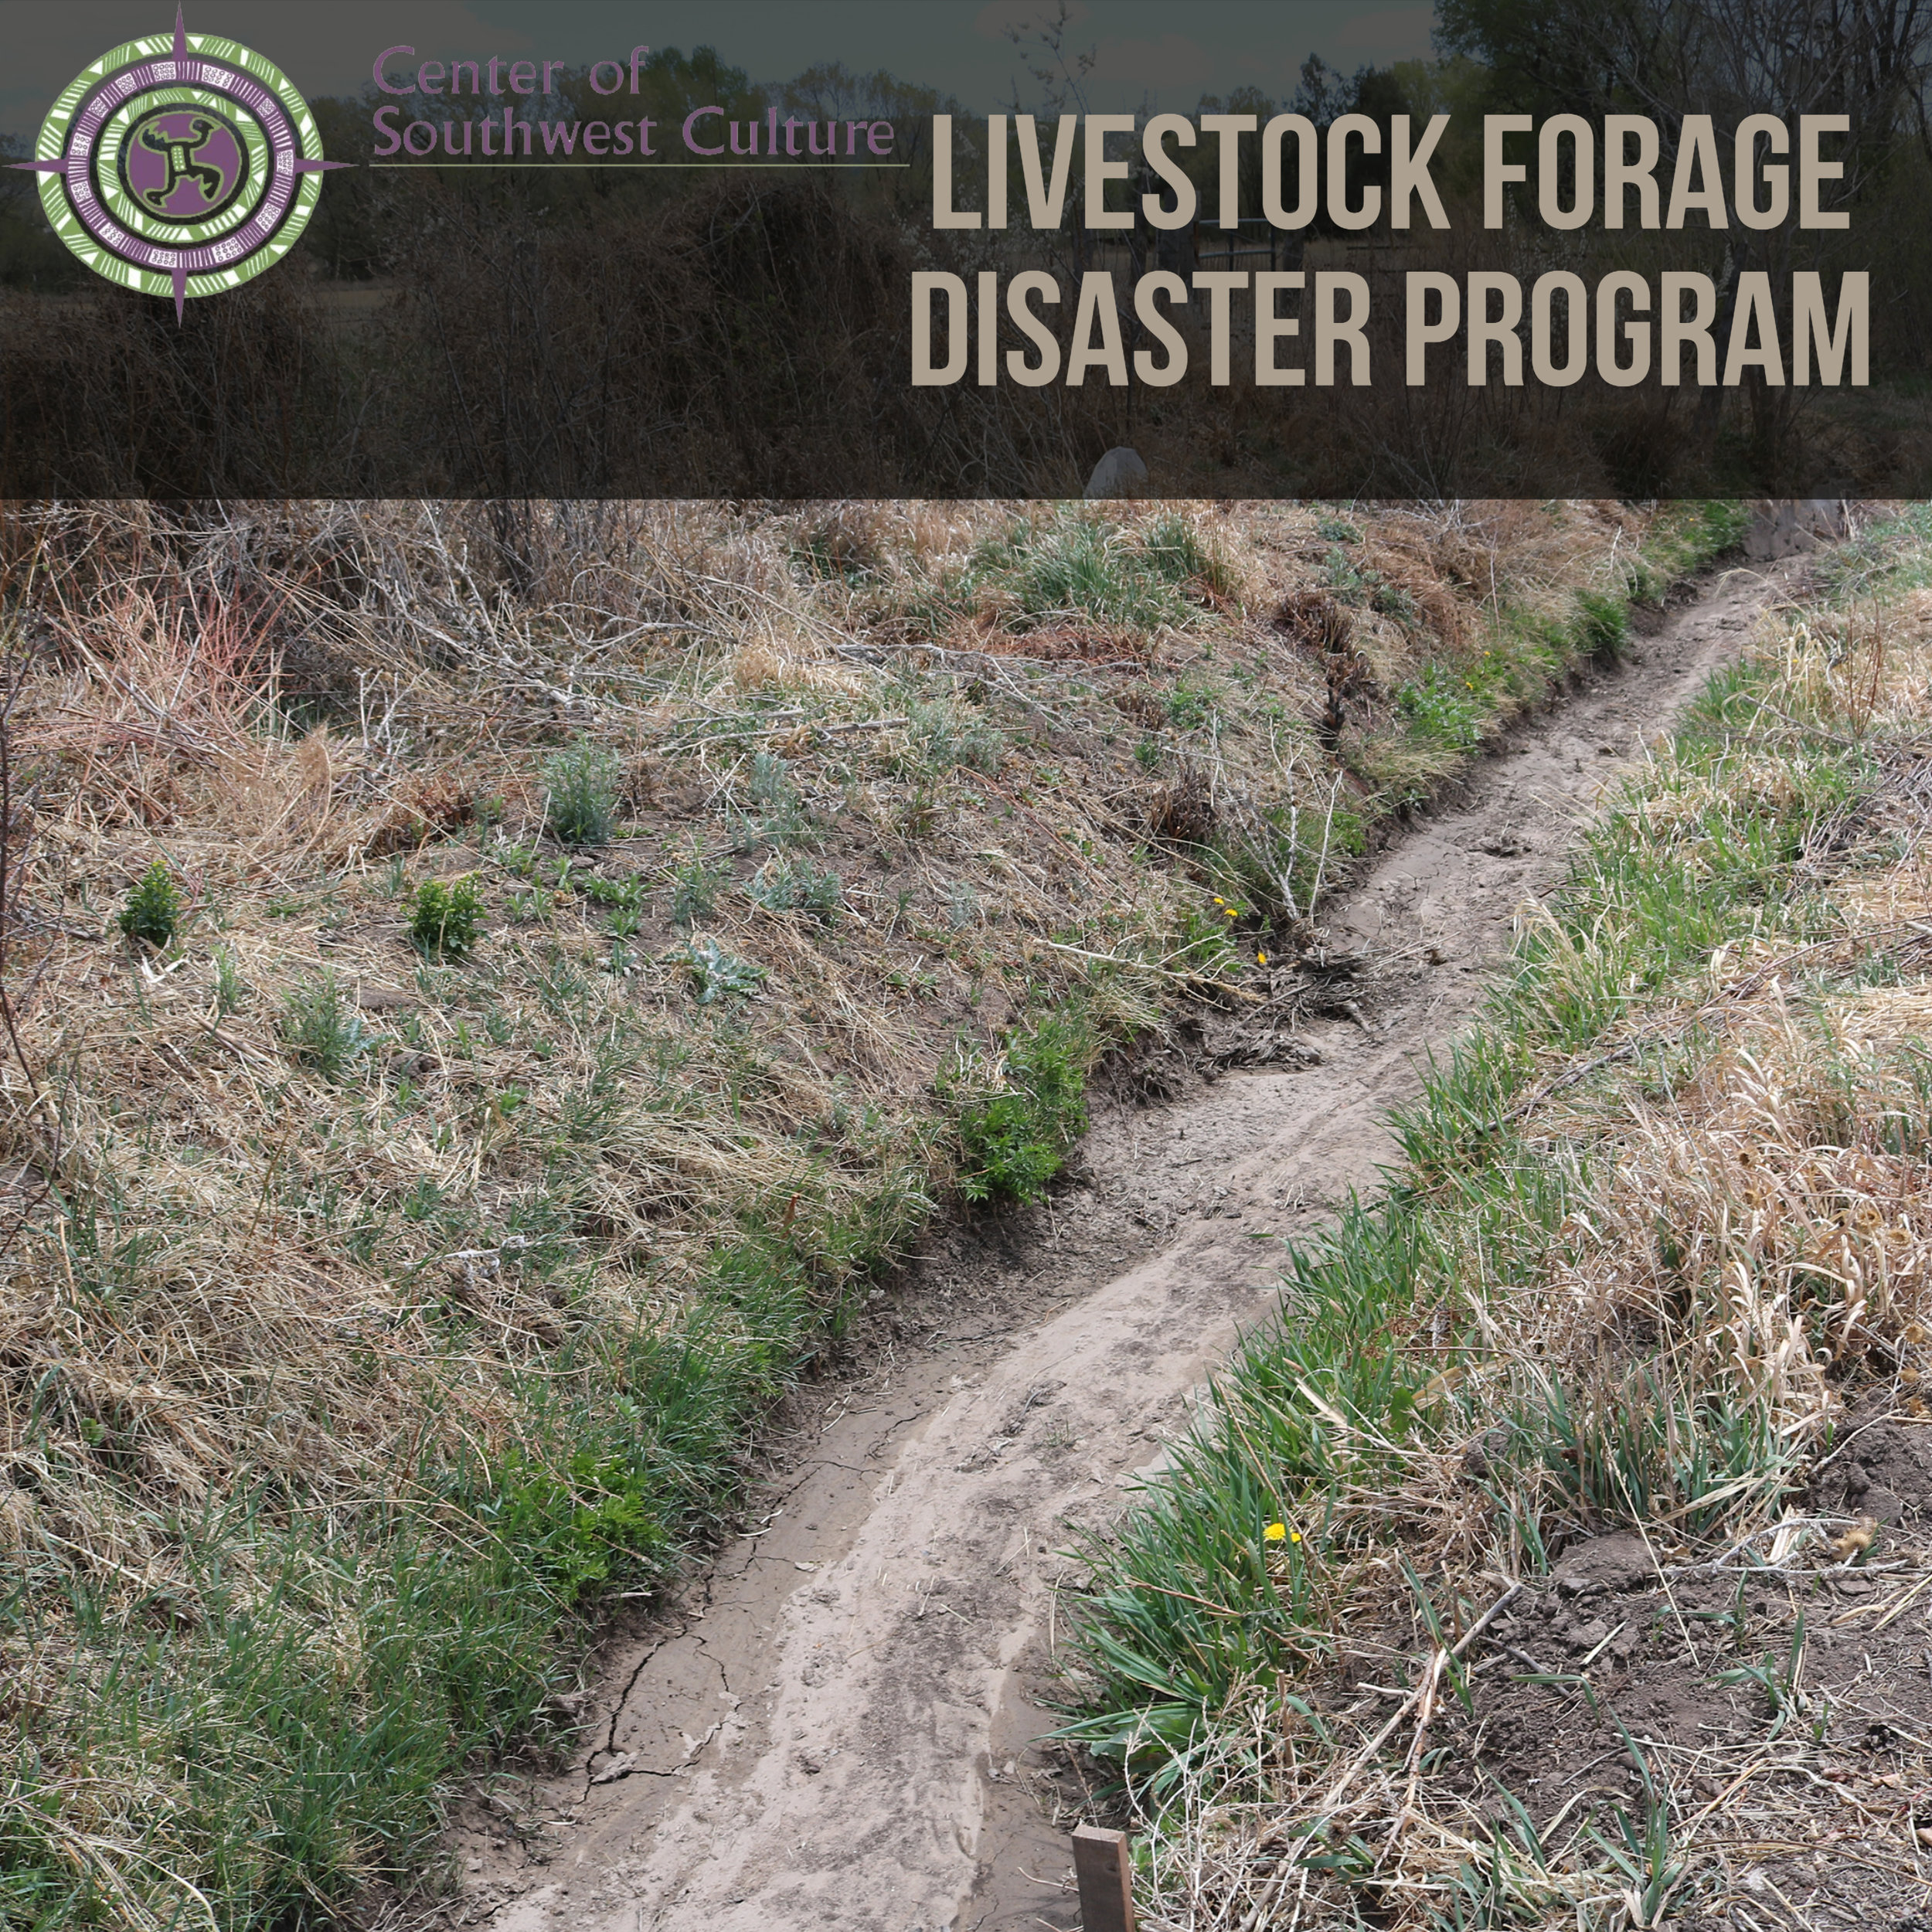 Livestock Forage Disaster Program - The Livestock Forage Disaster Program provides compensation to eligible livestock producers who have suffered grazing losses for covered livestock on land that is native or improved pastureland with permanent vegetative cover or is planted specifically for grazing. PDF of information can be found here.